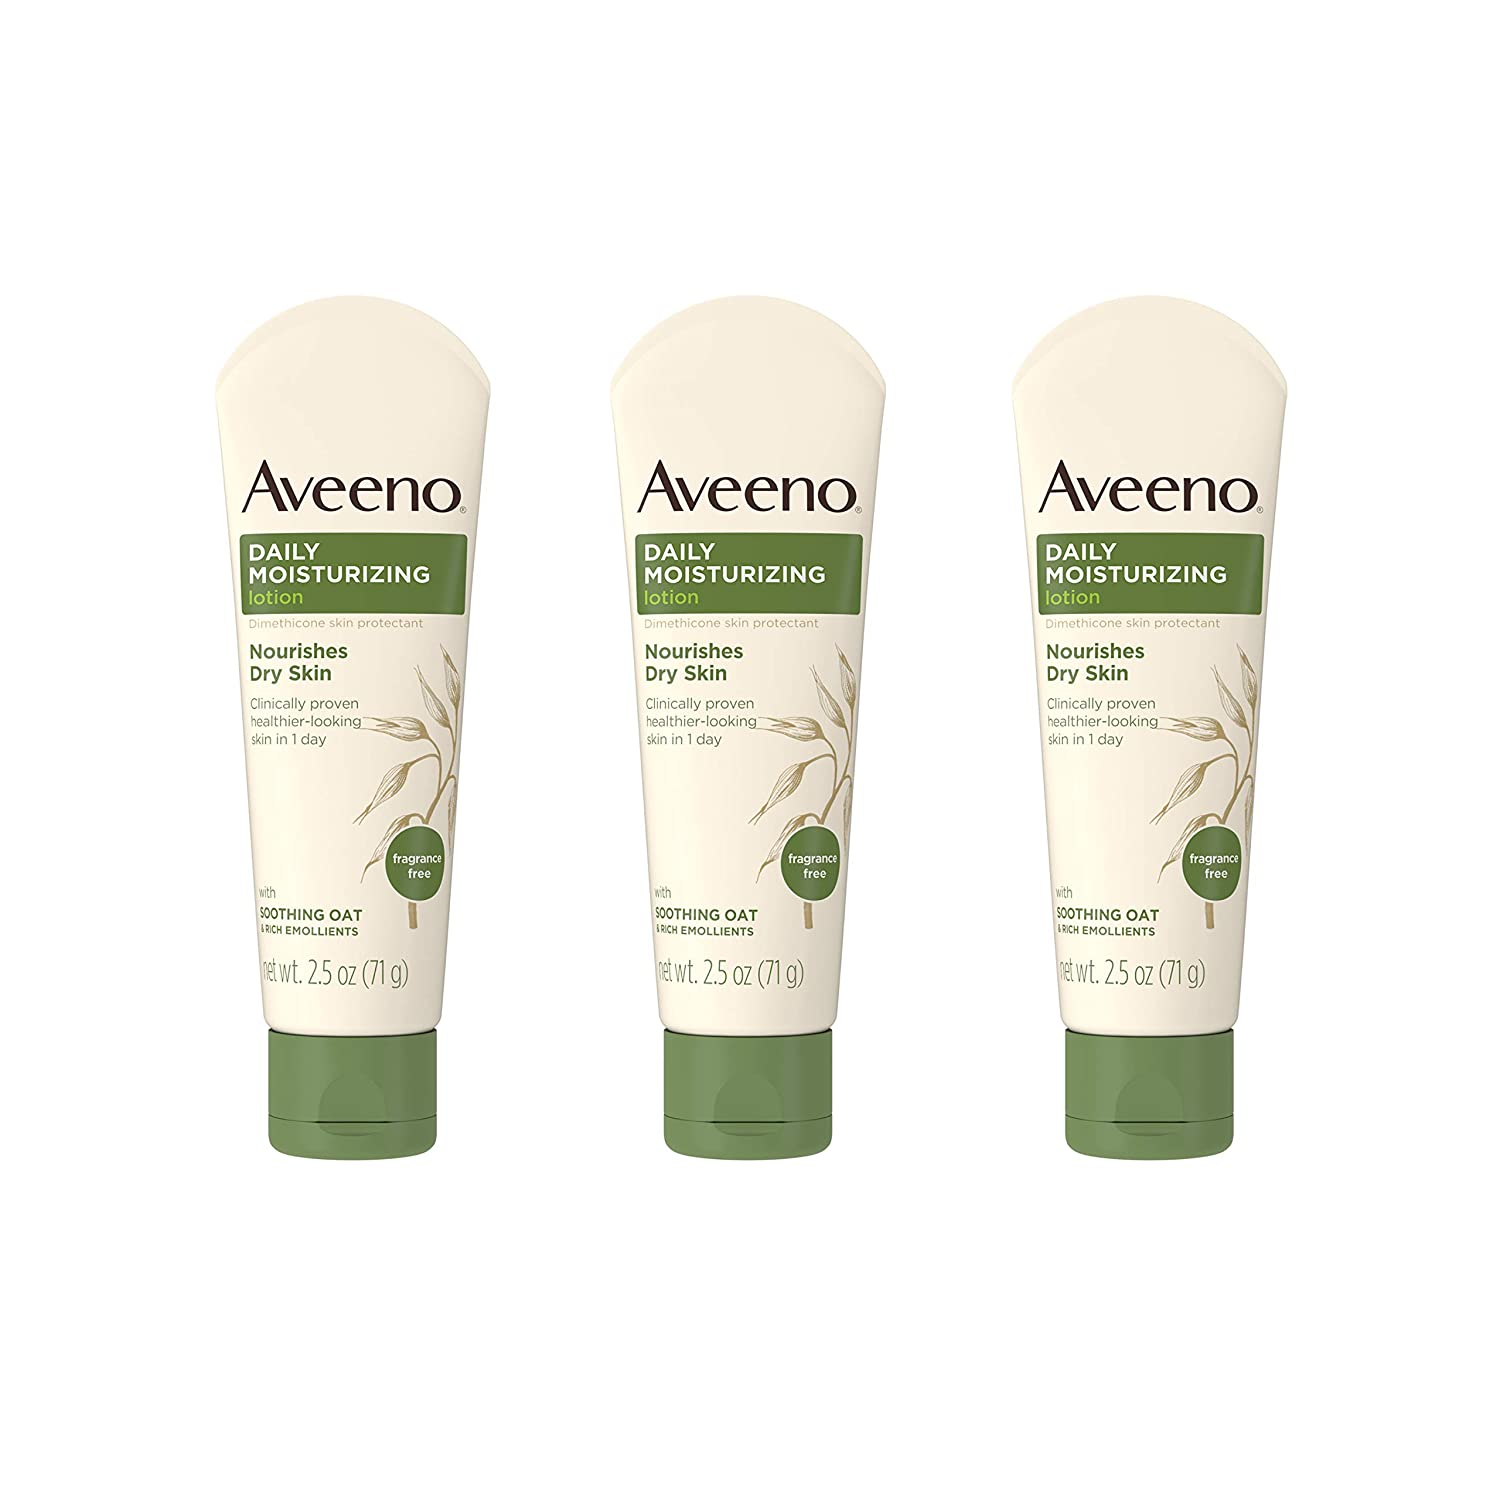 Aveeno Daily Moisturizing Body Lotion with Soothing Oat and Rich Emollients to Nourish Dry Skin, Fragrance-Free, 2.5 fl. oz (Pack of 3): Beauty